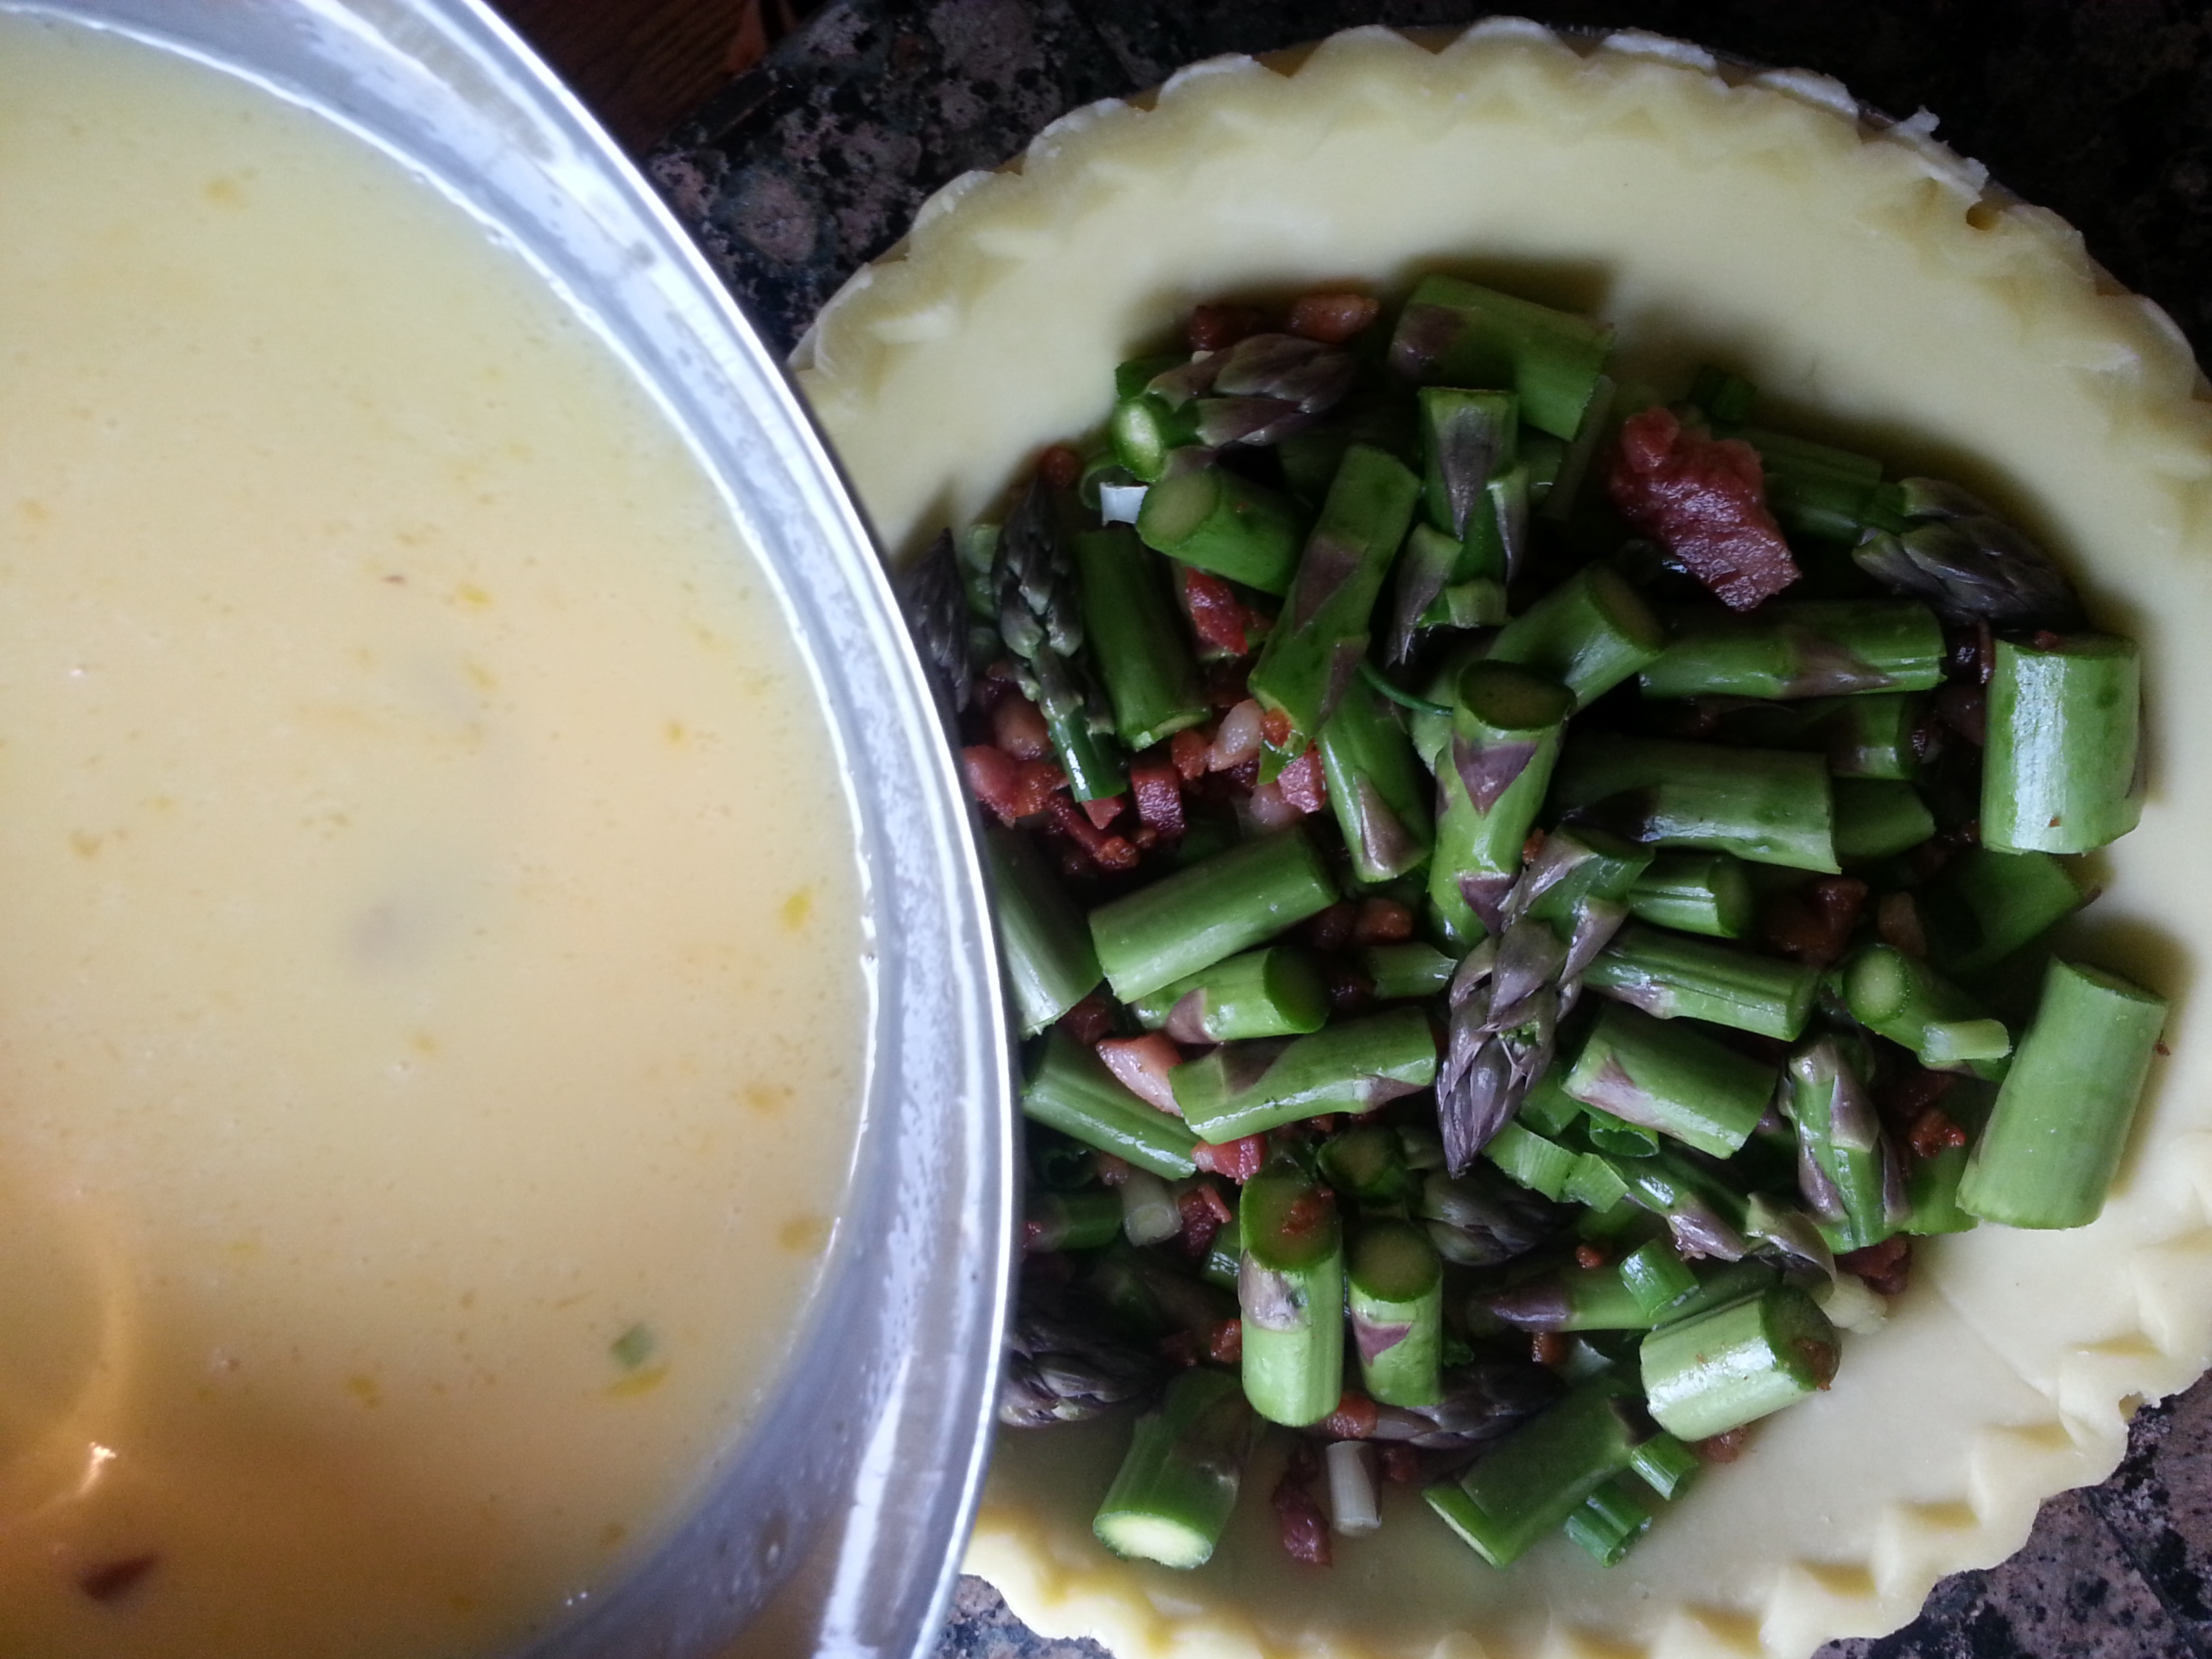 Asparagus and Pancetta Quiche - Gluten free, Dairy Free, Soy Free, Nut Free Recipe